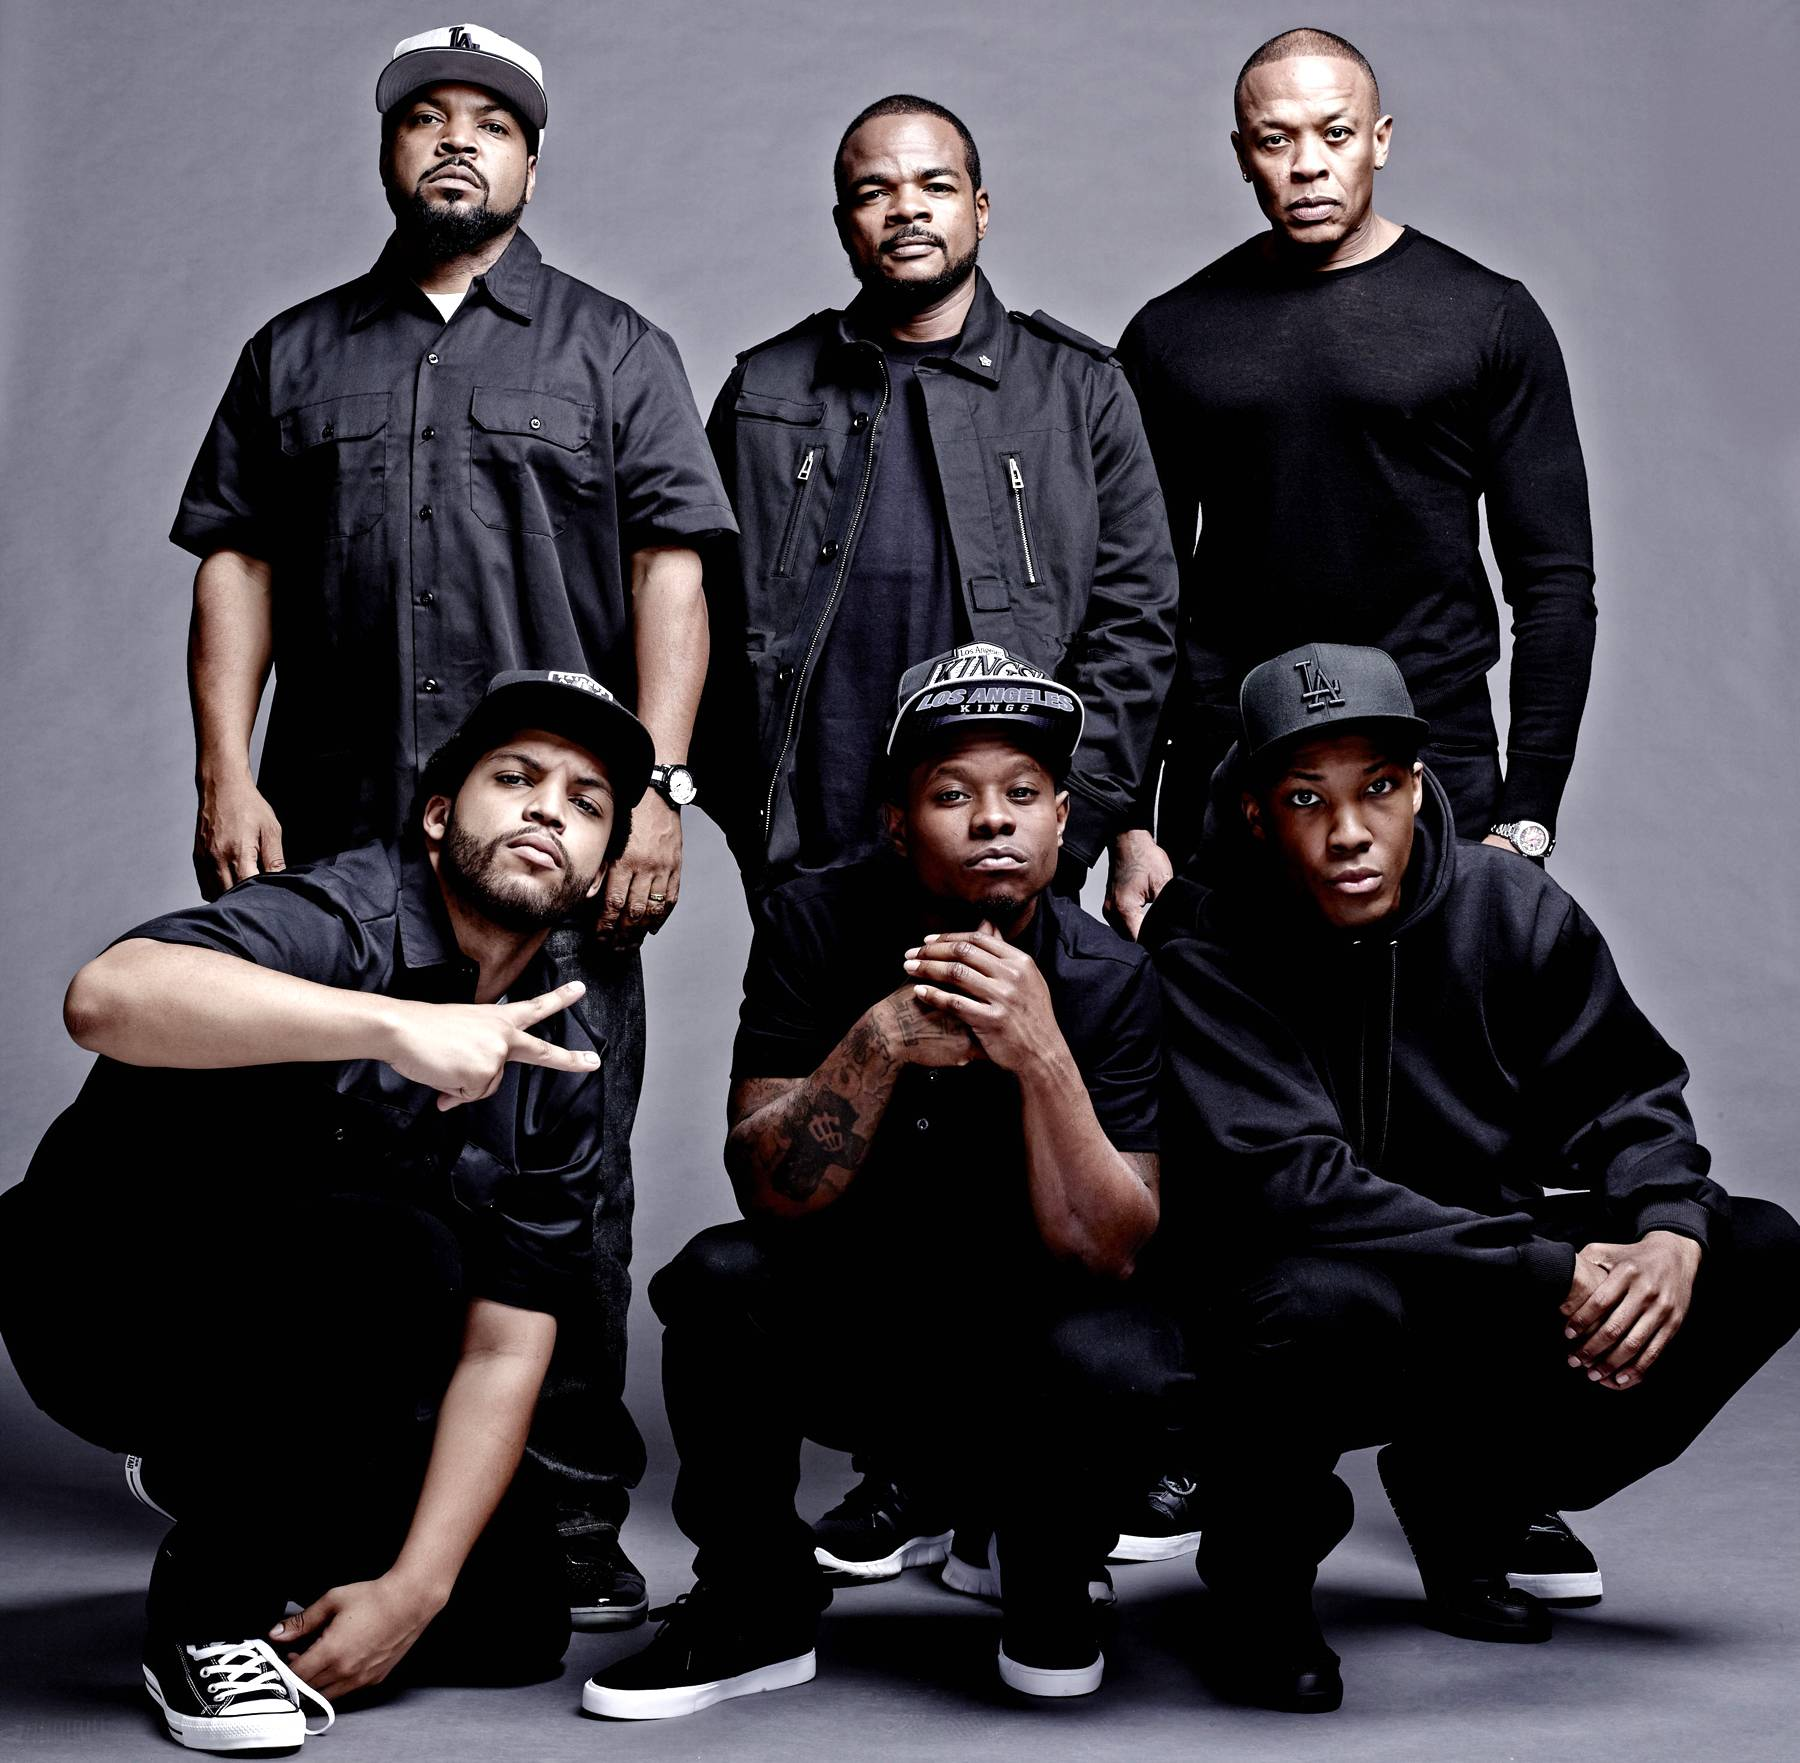 10 Things That Must Be Addressed in N.W.A. Movie - The casting for the starring roles in the upcoming N.W.A. biopic Straight Outta Compton is now complete as Aldis Hodge has been cast to play MC Ren while Neil Brown Jr. will play DJ Yella. Corey Hawkins and Jason Mitchell were previously cast to play Dr. Dre and Eazy-E while Ice Cube's son O'Shea Jackson Jr. will play portray his pops. The film will be directed by F. Gary Gray and is scheduled to hit theatres on August 14, 2015.Now with many biopics, creative licensing is usually taken and many facts are purposelyleft out or the truth is sometimes glossed over. With the living members of the group serving as producers of the film, let's hope this doesn't happen. Still, there are a few topics that we think need to be properly addressed in the upcoming film. — Michael Harris (@IceBlueVA)(Photo:Todd MacMillan/Universal Pictures)